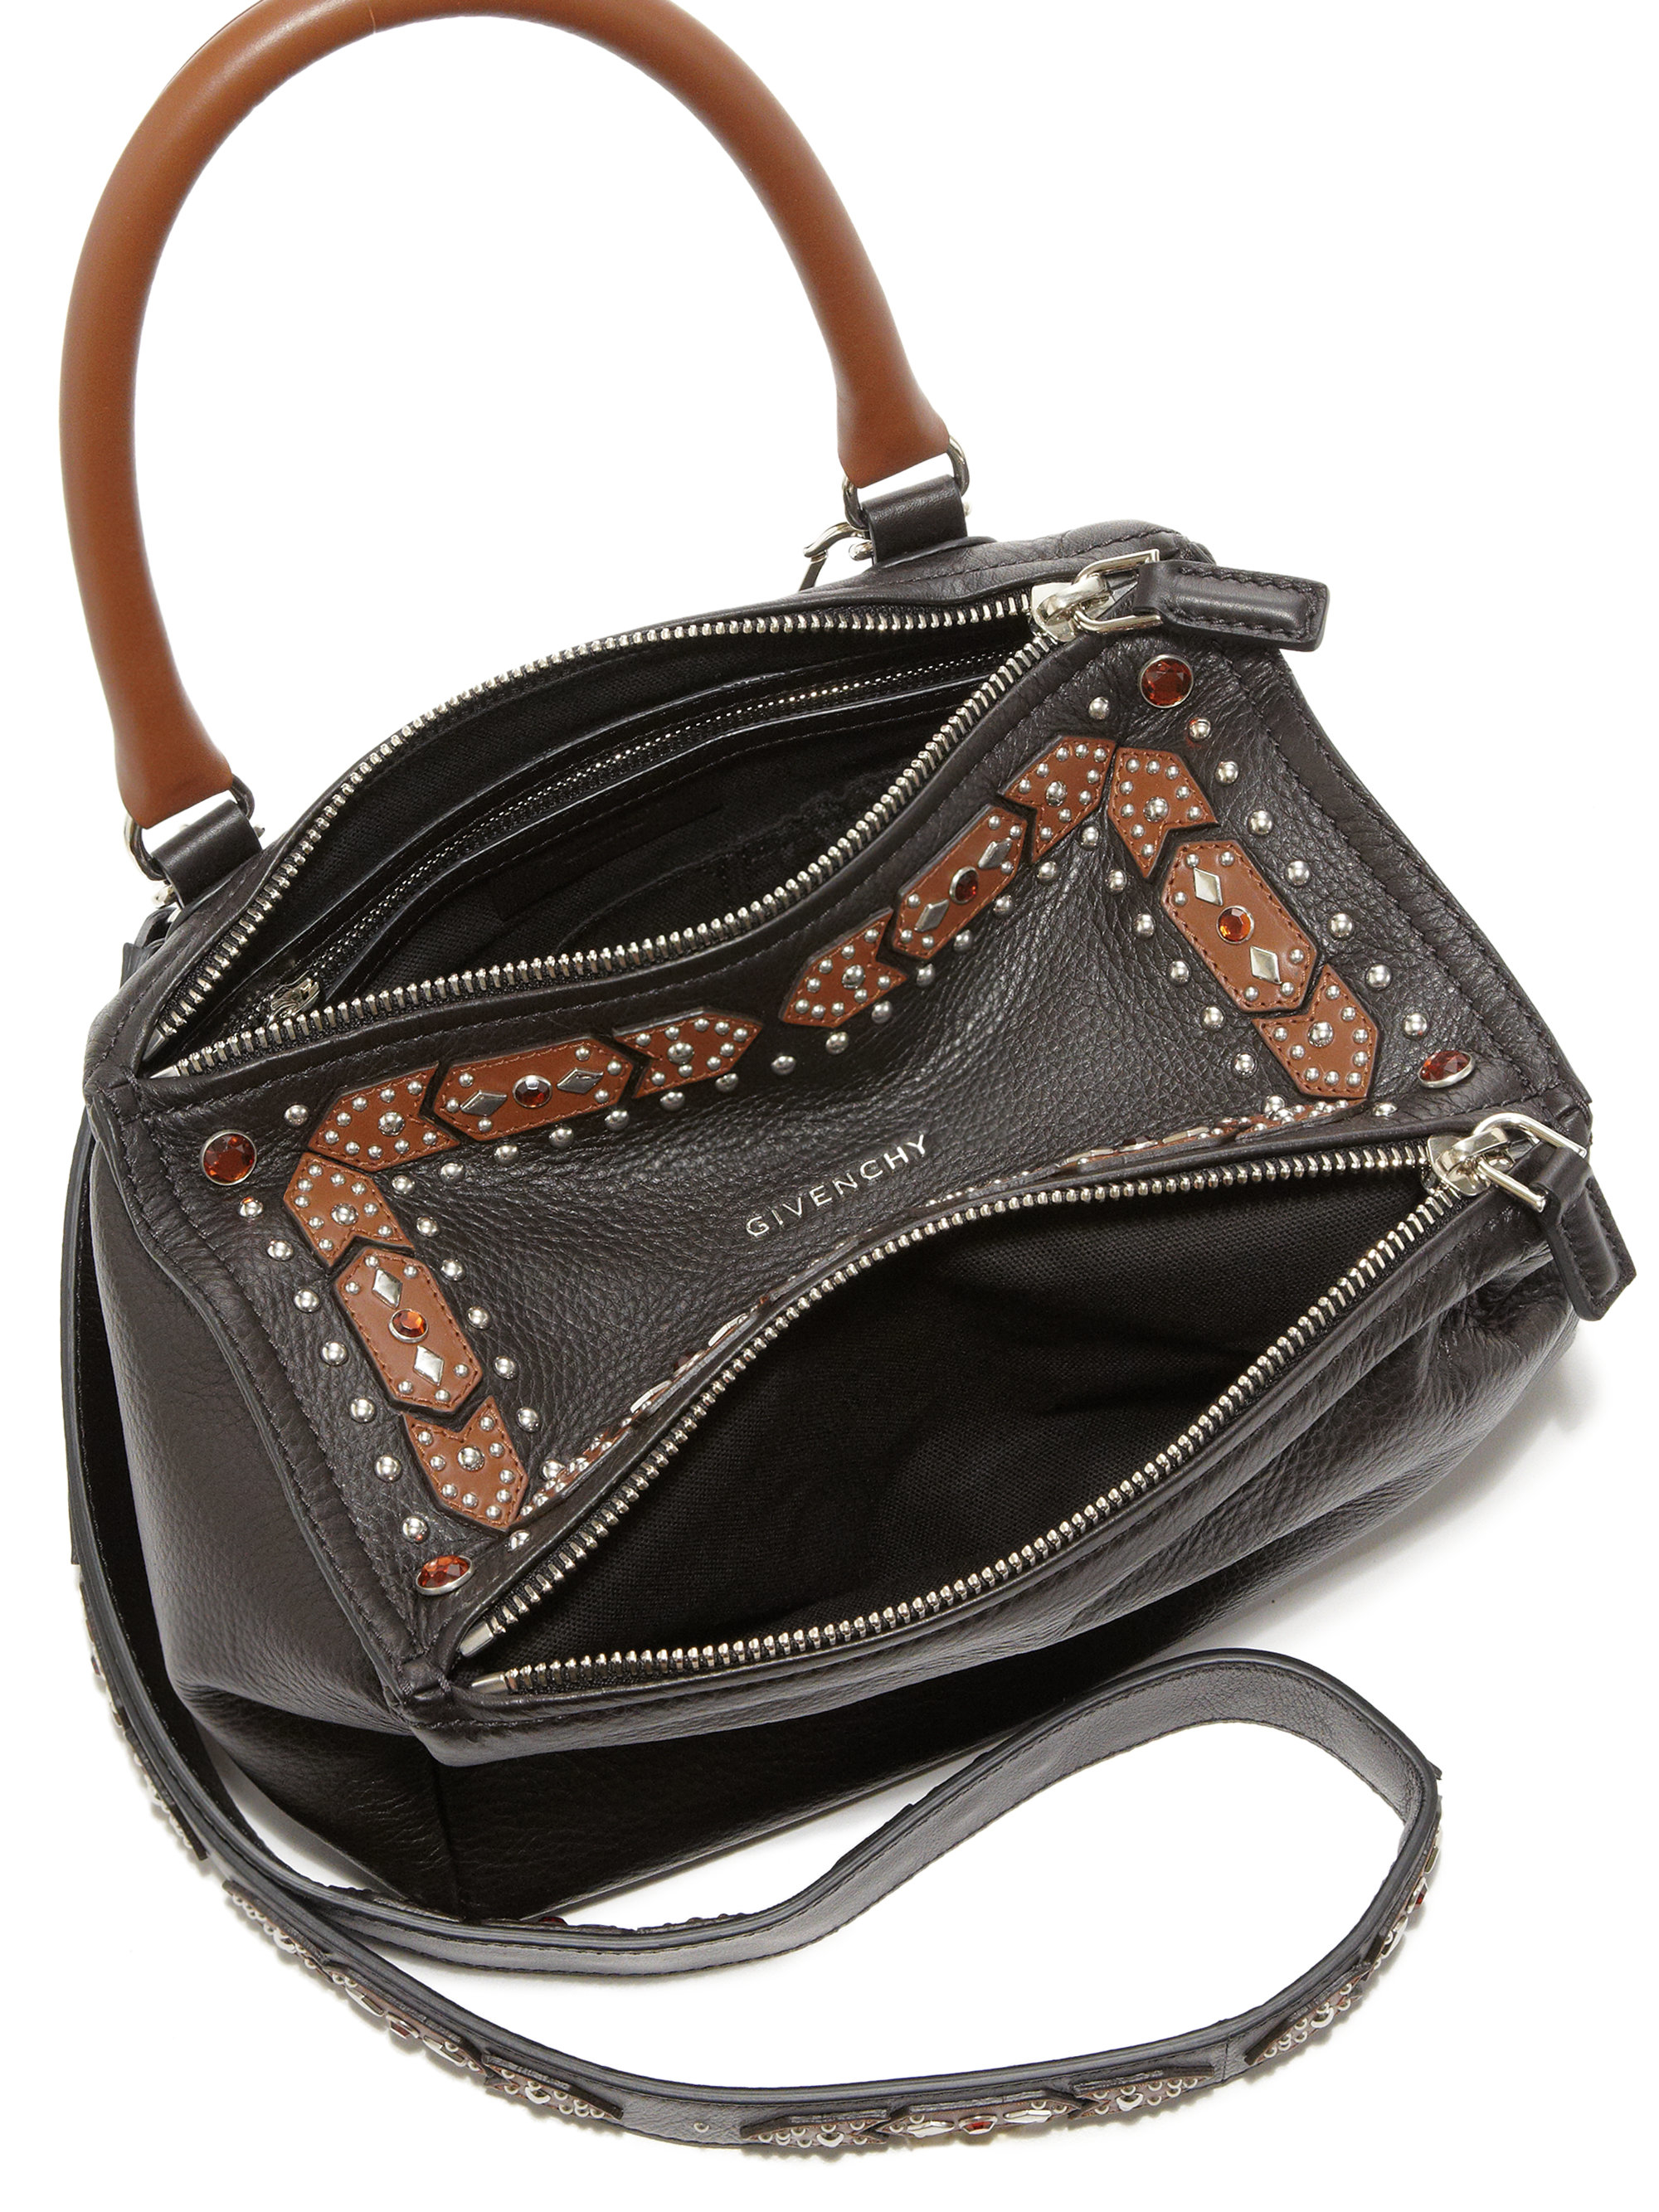 edd0e002b8e2 Lyst - Givenchy Pandora Small Studded Leather Shoulder Bag in Black